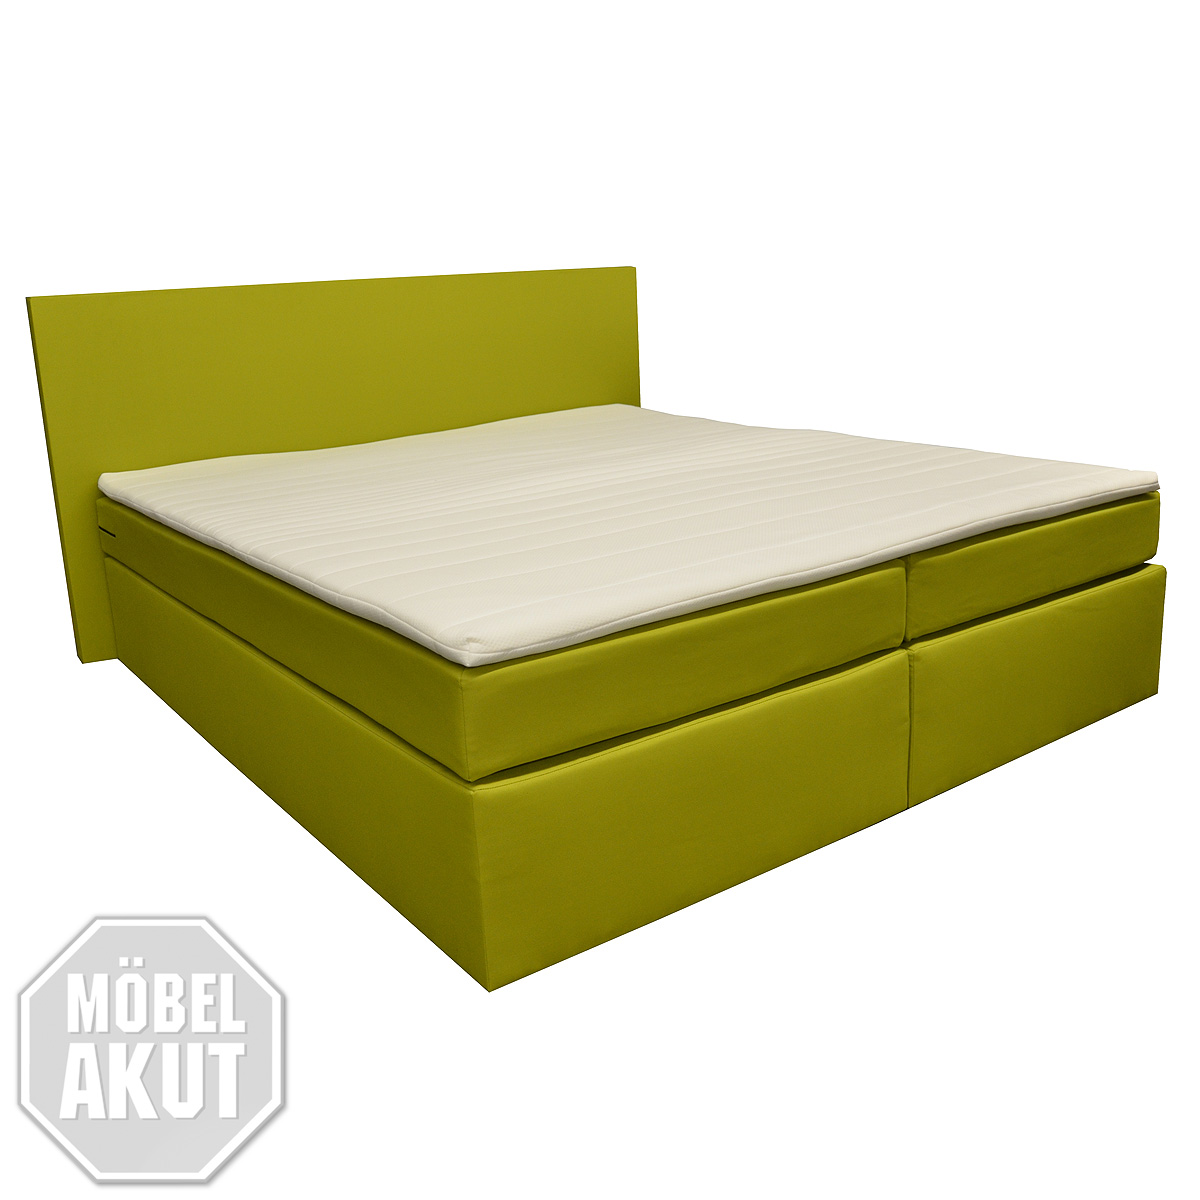 boxspring bett revenge doppelbett hotelbett in limette inkl topper 140x200 ebay. Black Bedroom Furniture Sets. Home Design Ideas